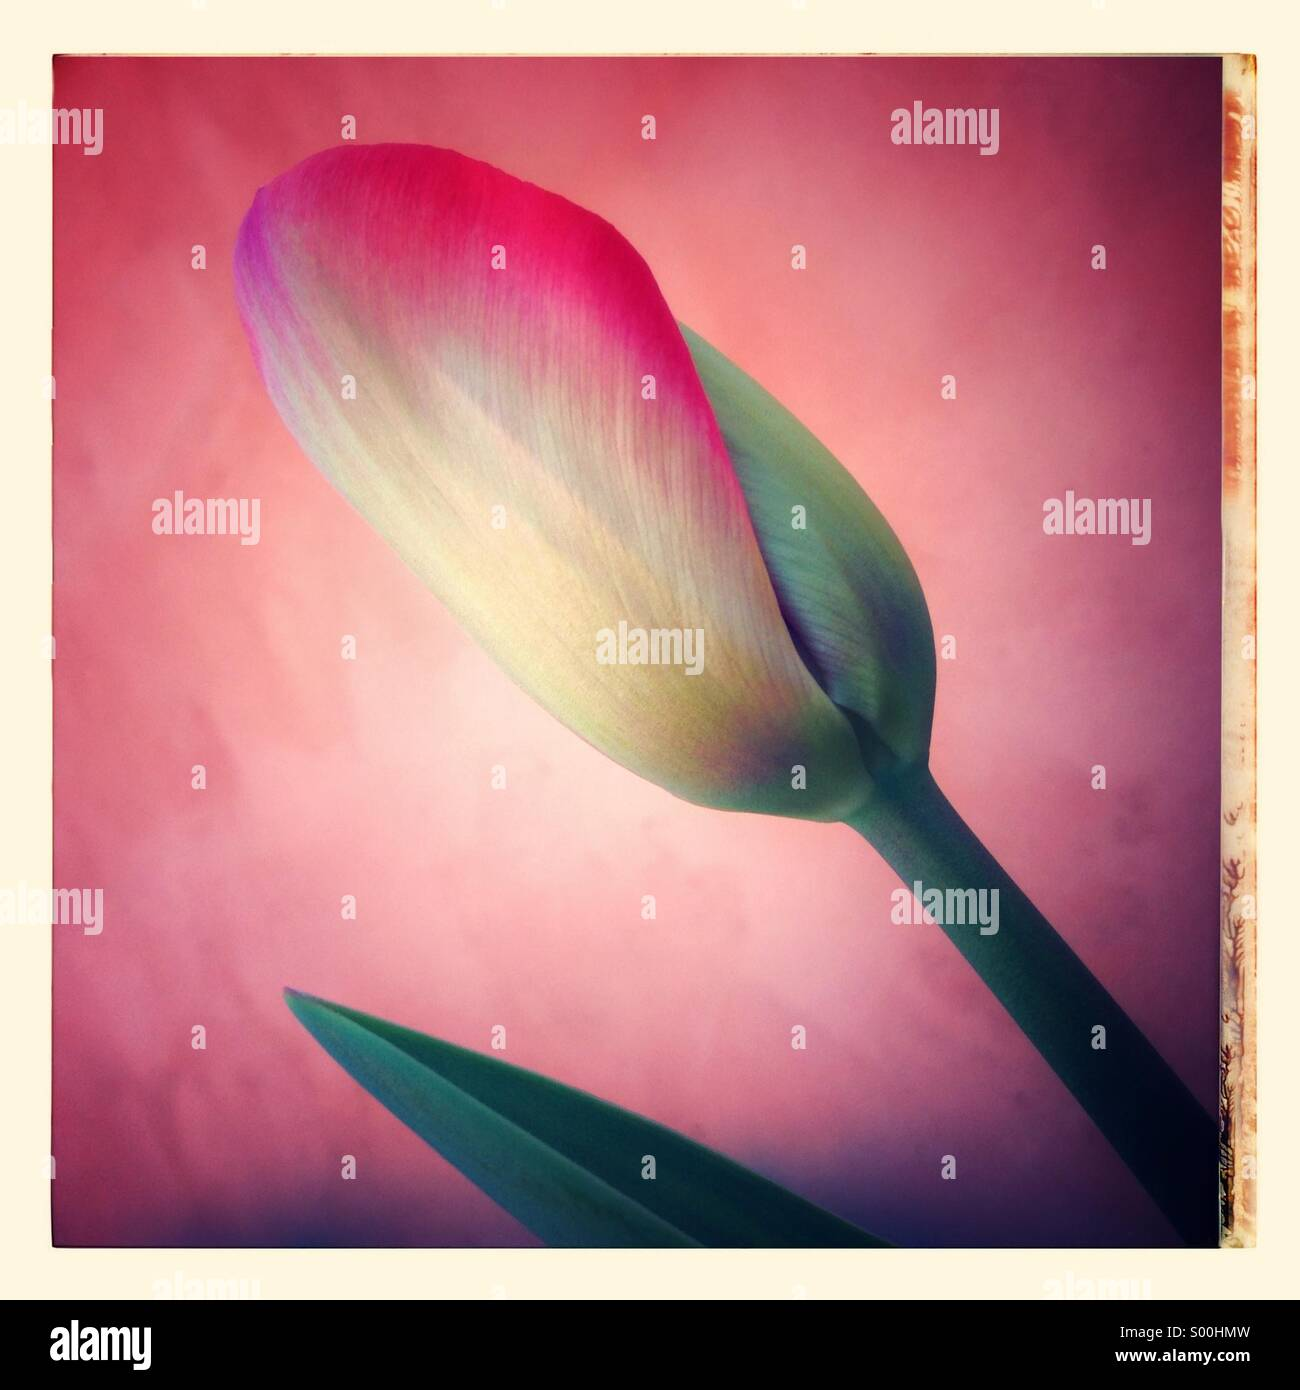 Tulip flower in pink background - Stock Image